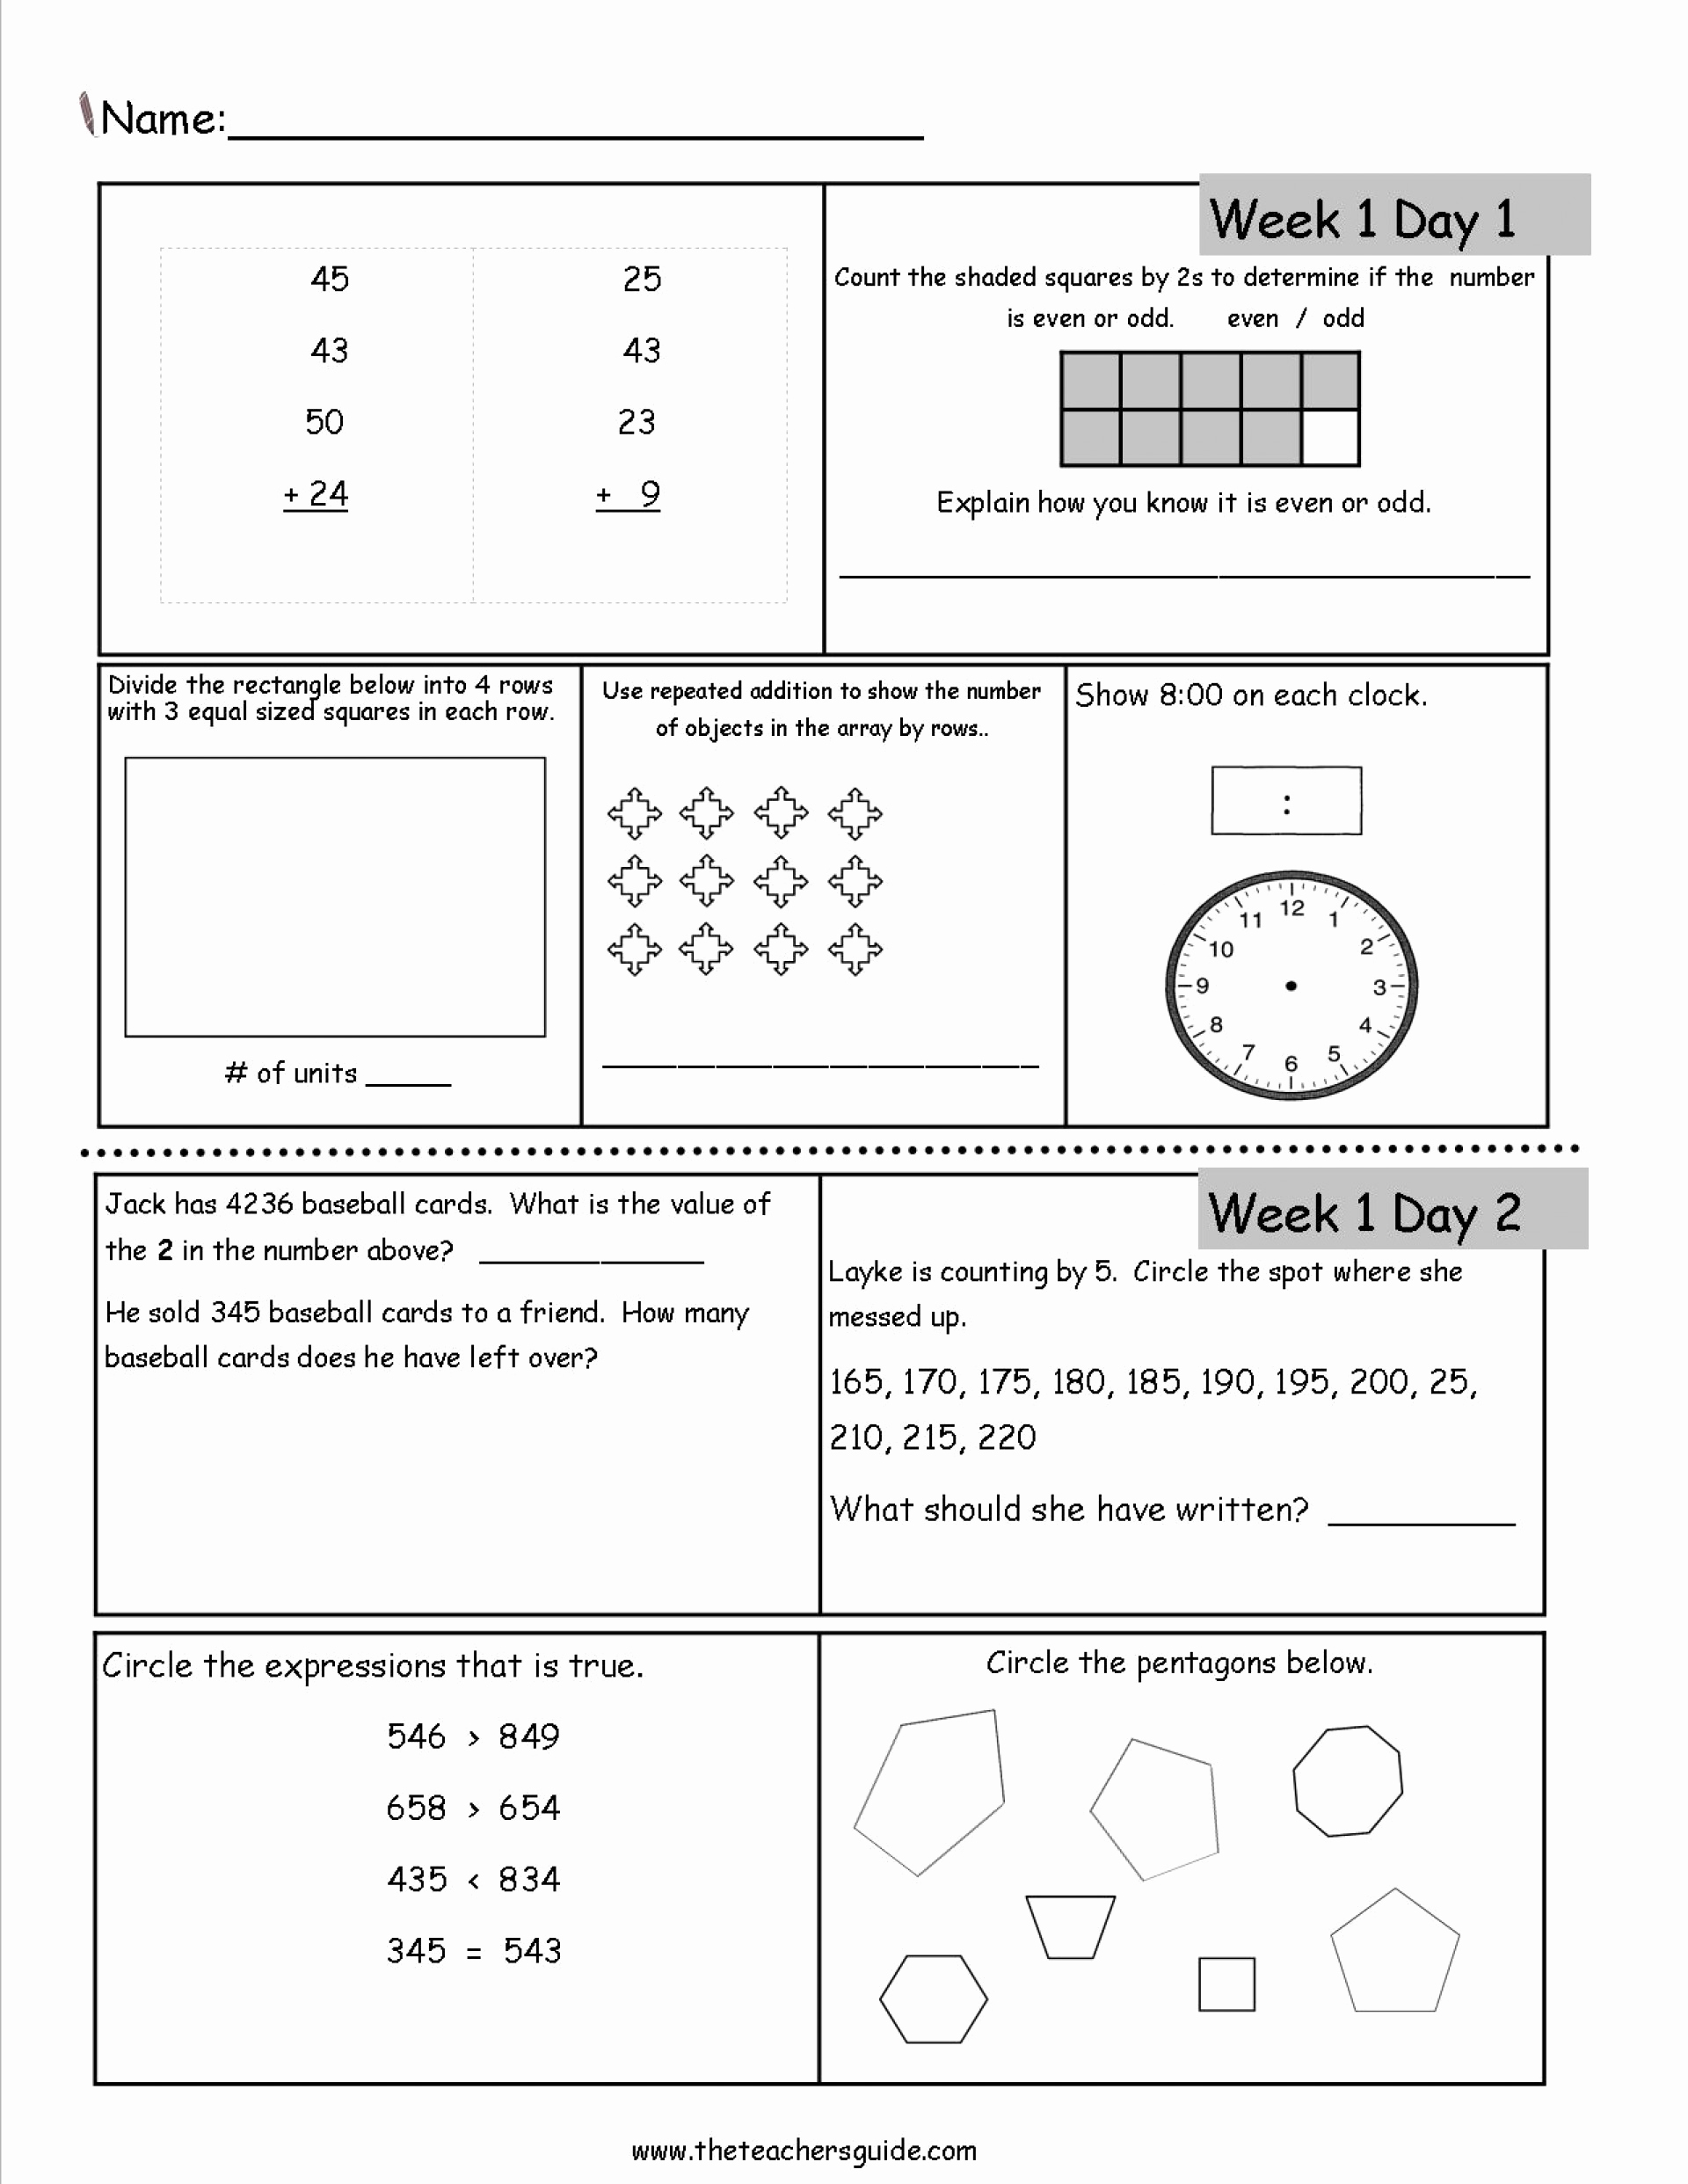 Place Value Worksheet 3rd Grade New Place Value Worksheets 3rd Grade for Download Place Value